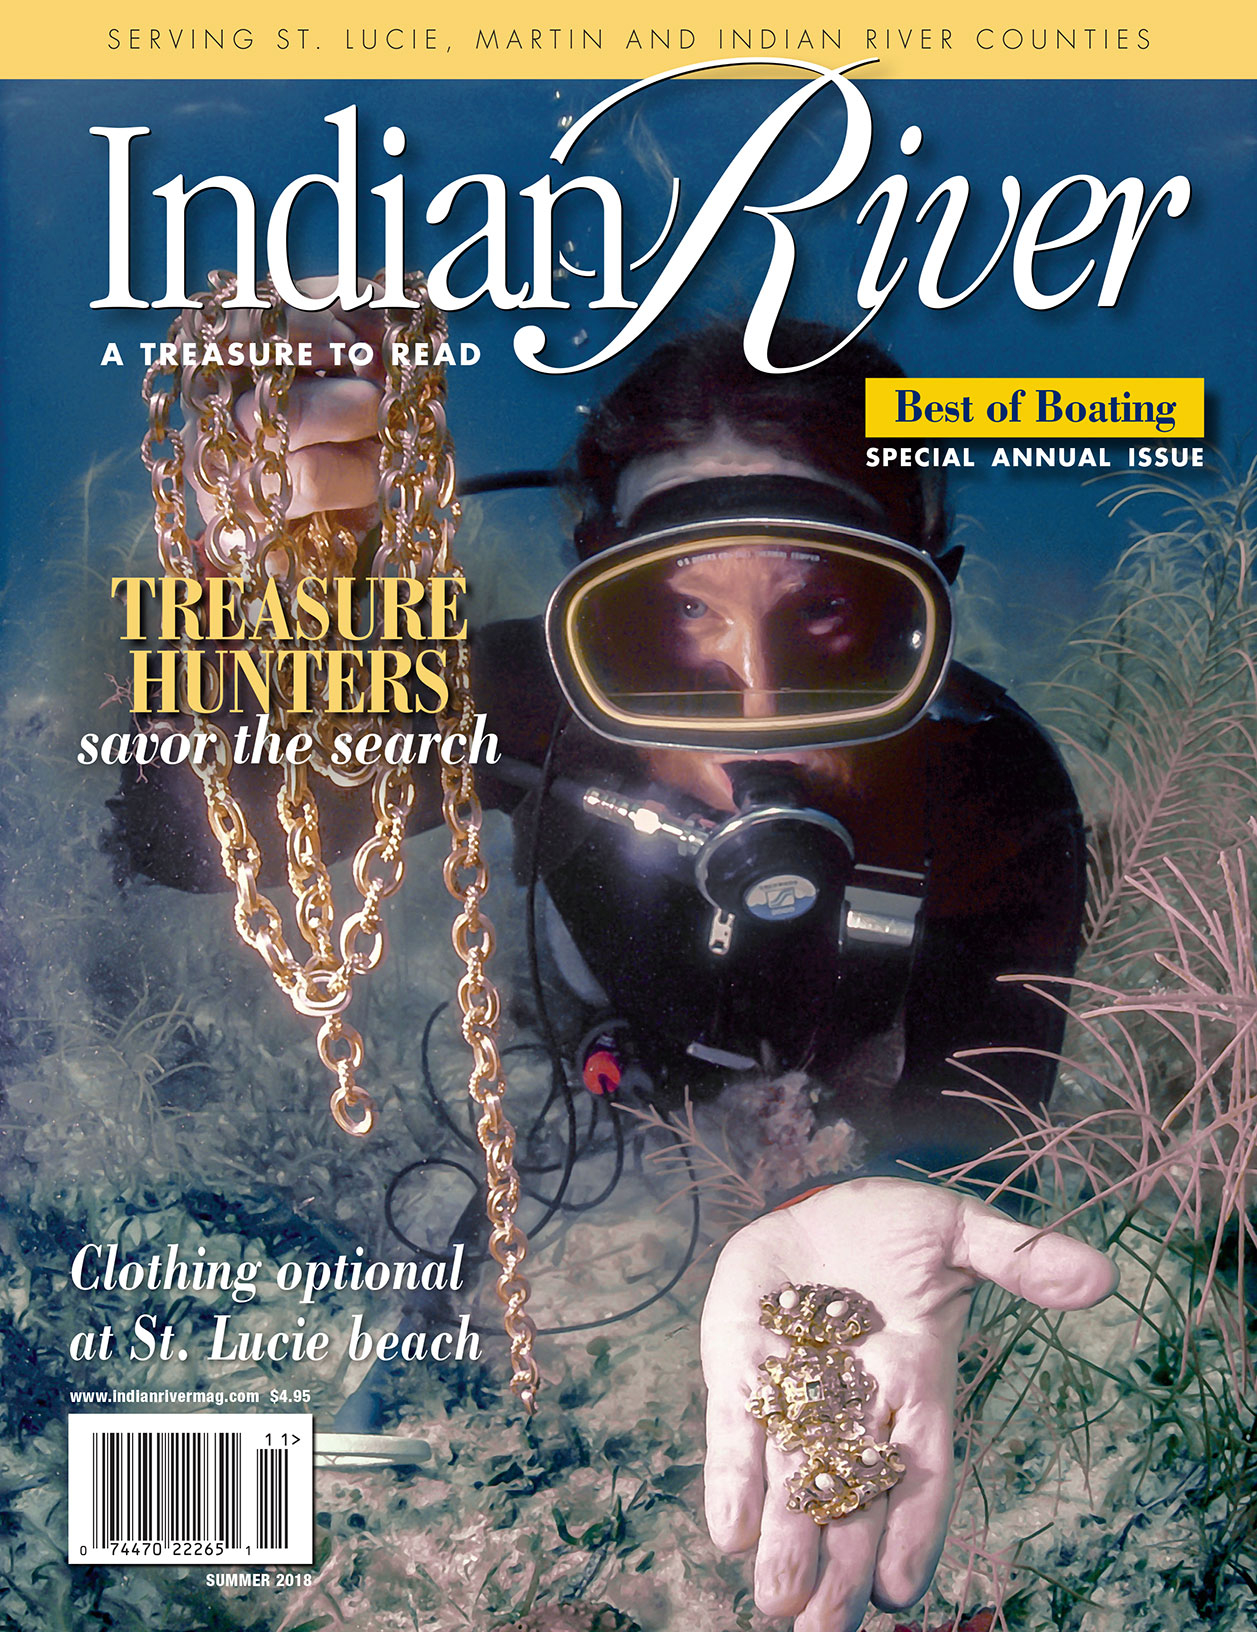 Summer 2018 Indian River Magazine